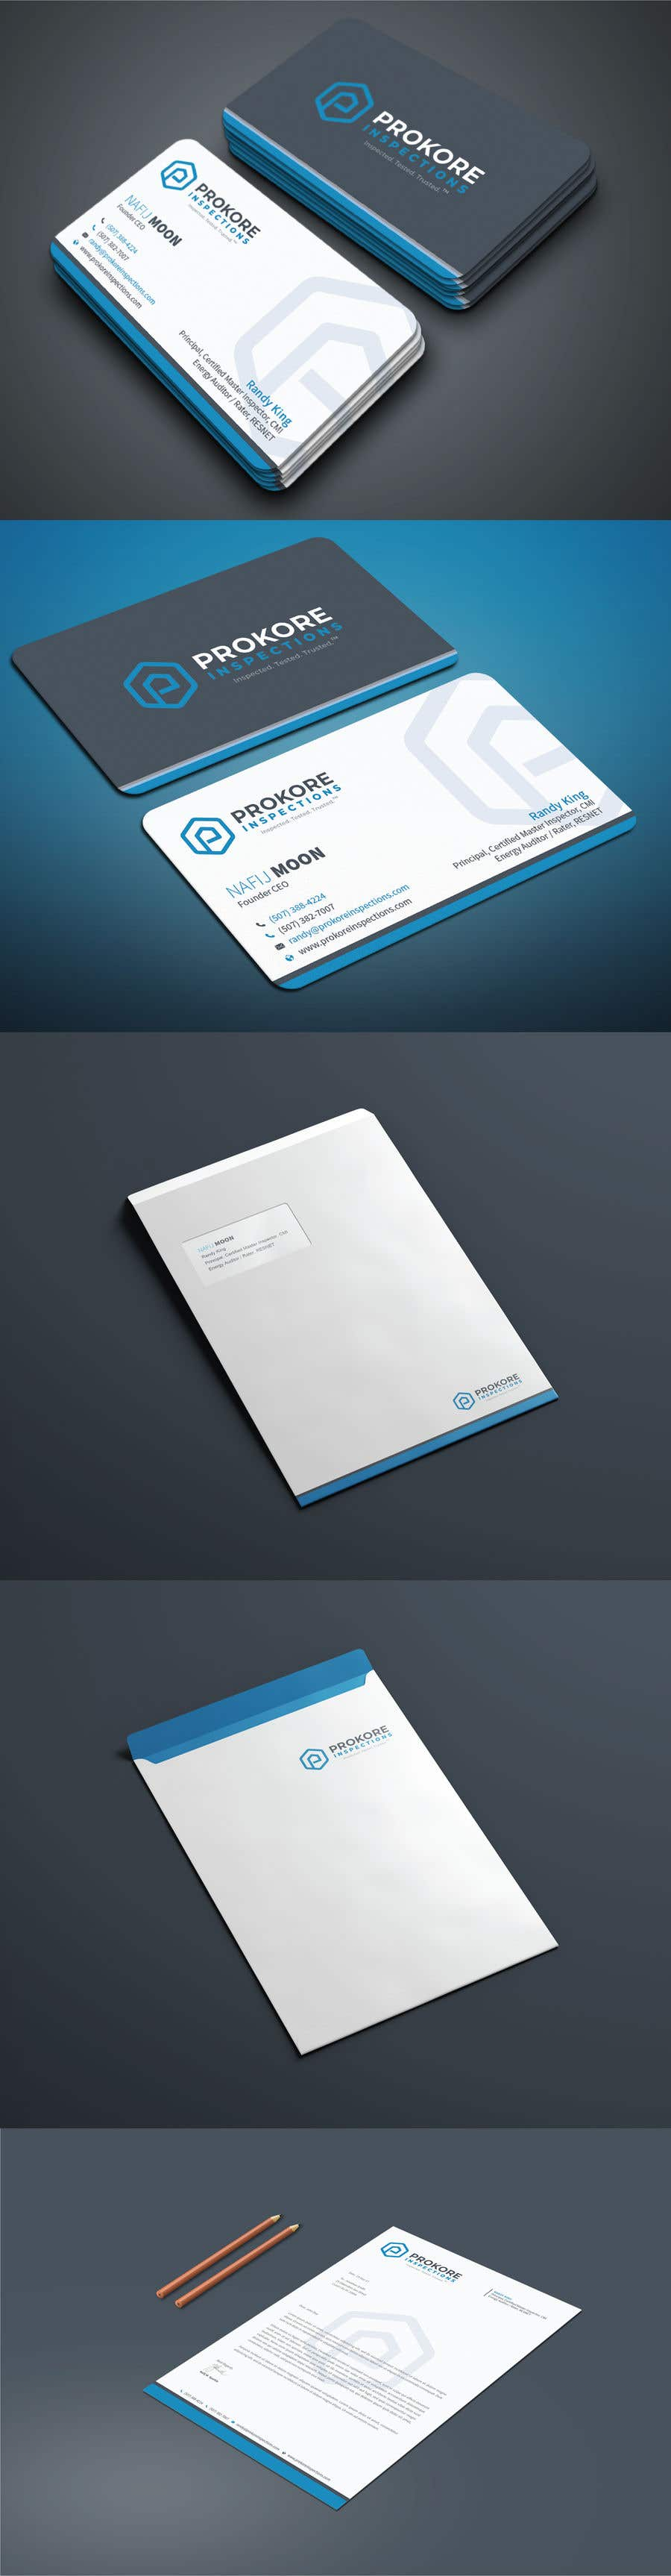 Contest Entry #280 for Corporate Brand Refresh